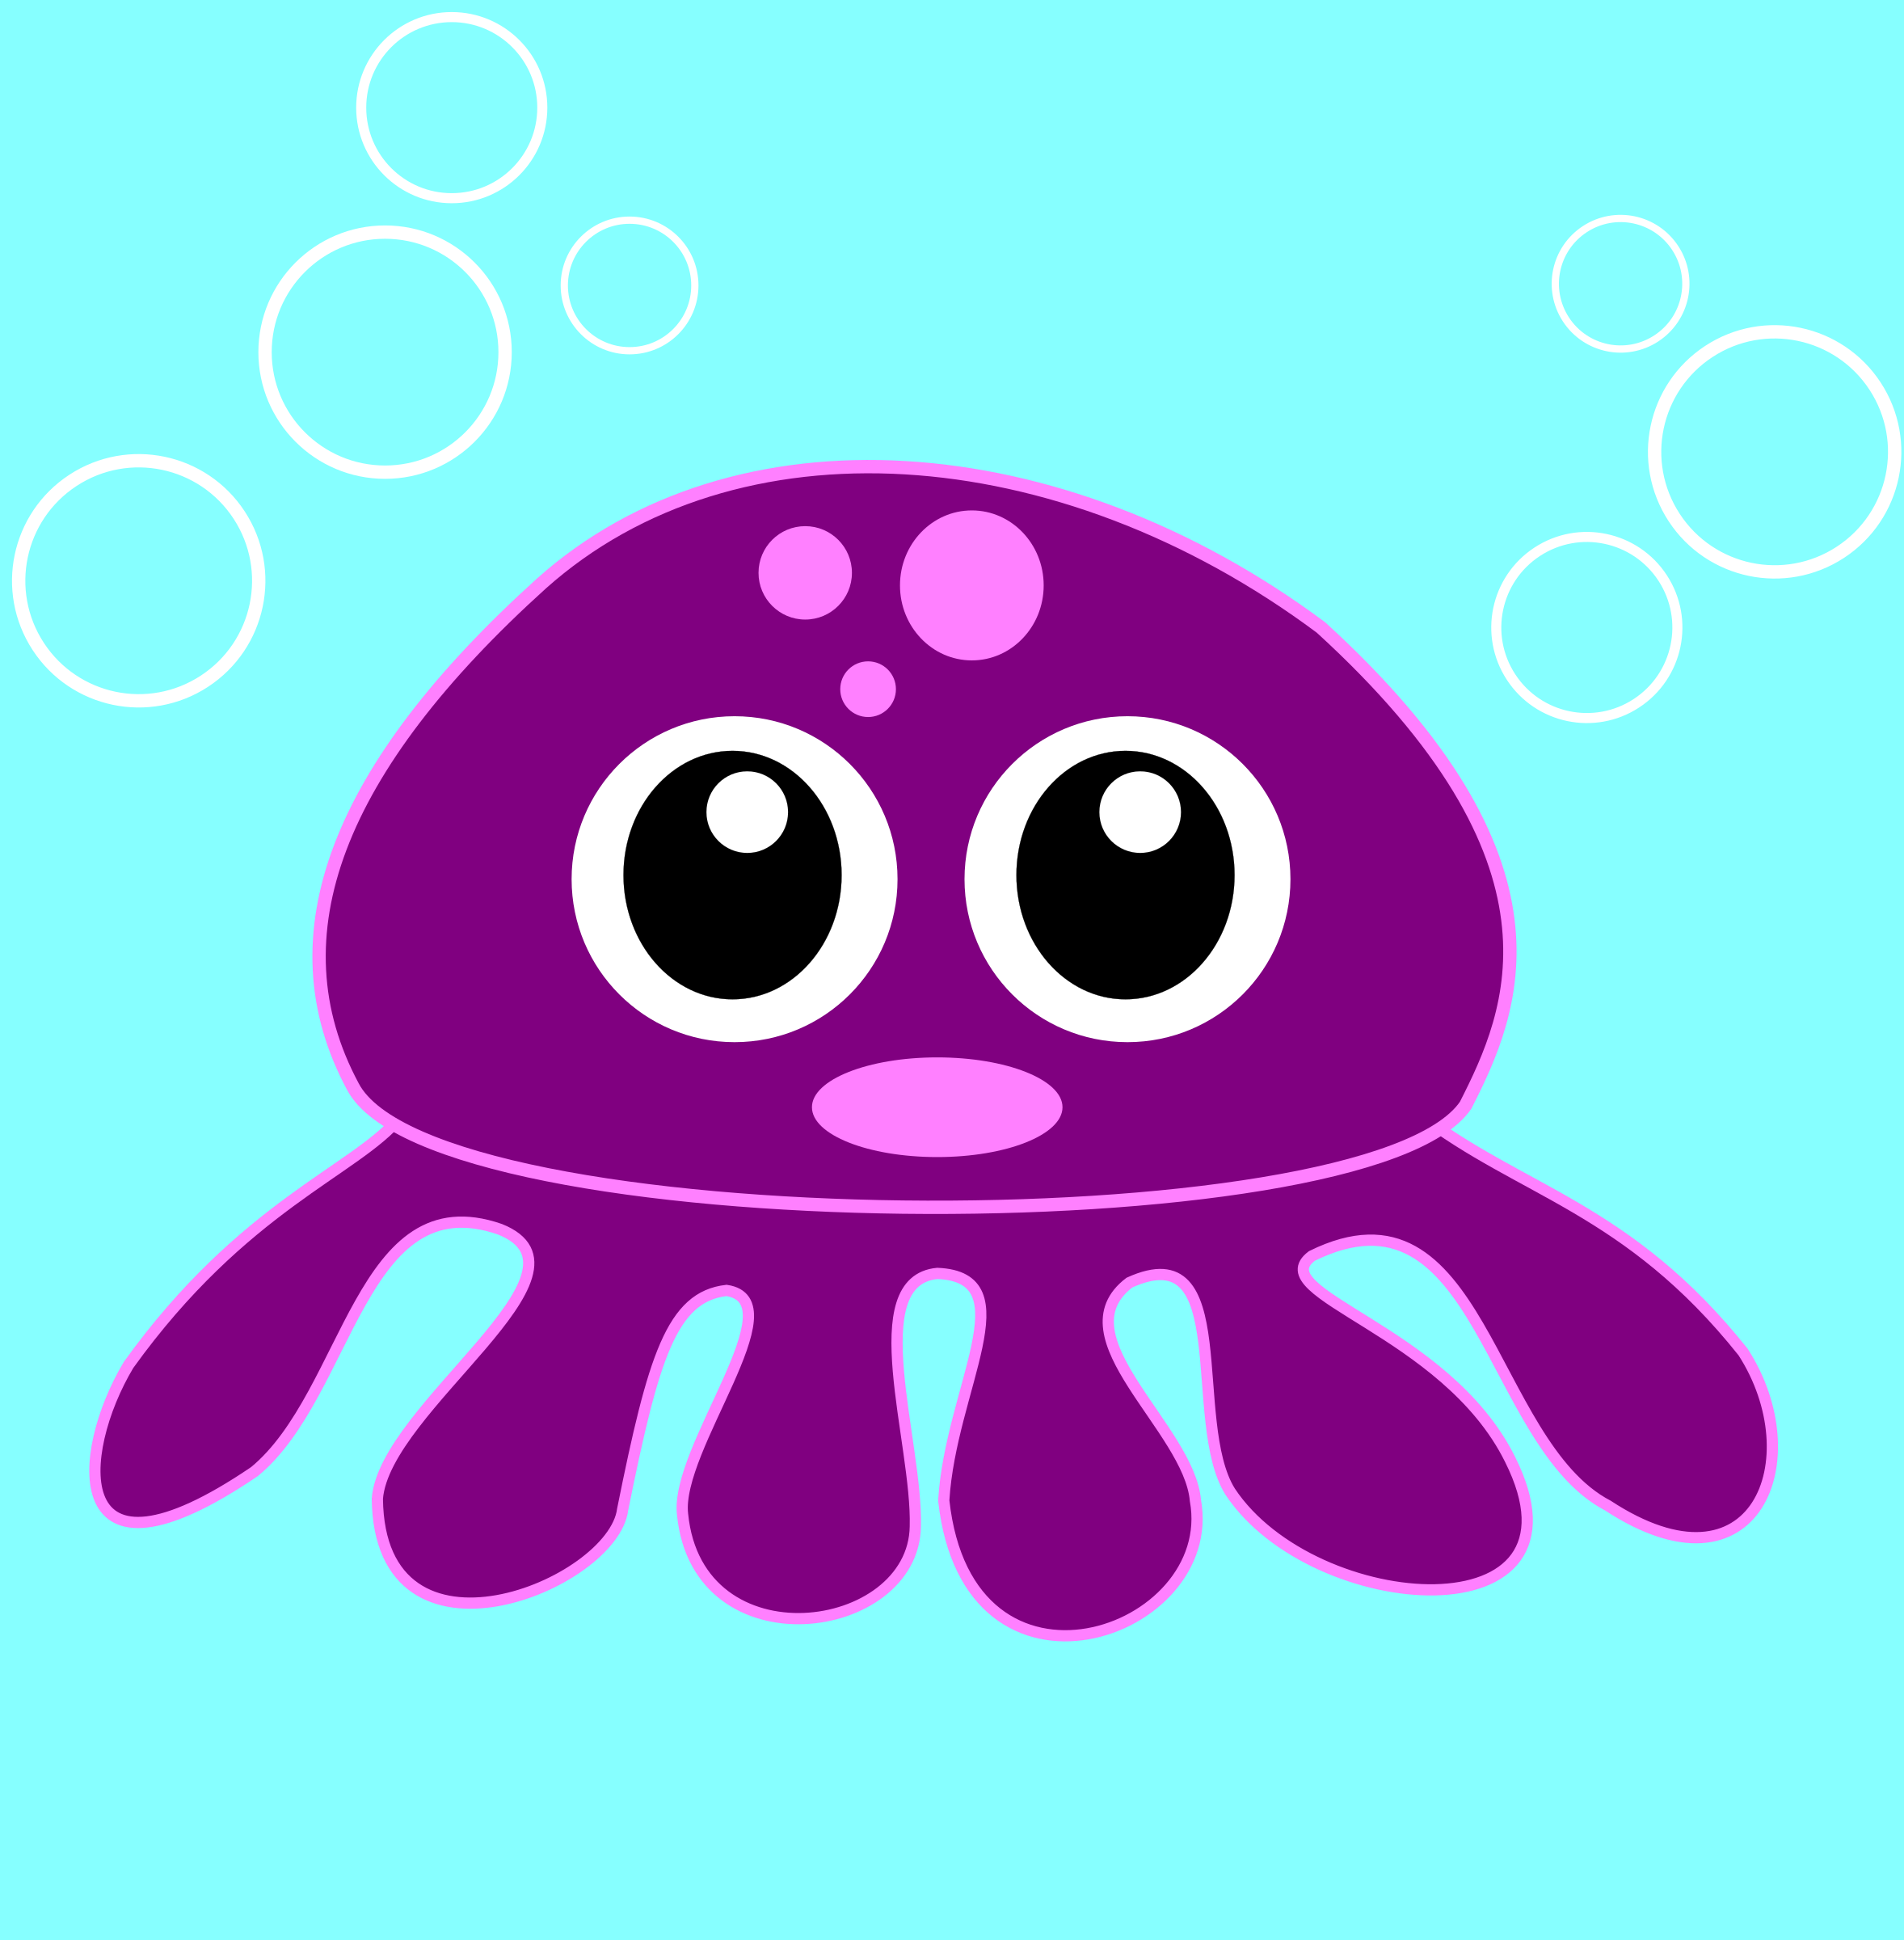 funny octopus by Martouf